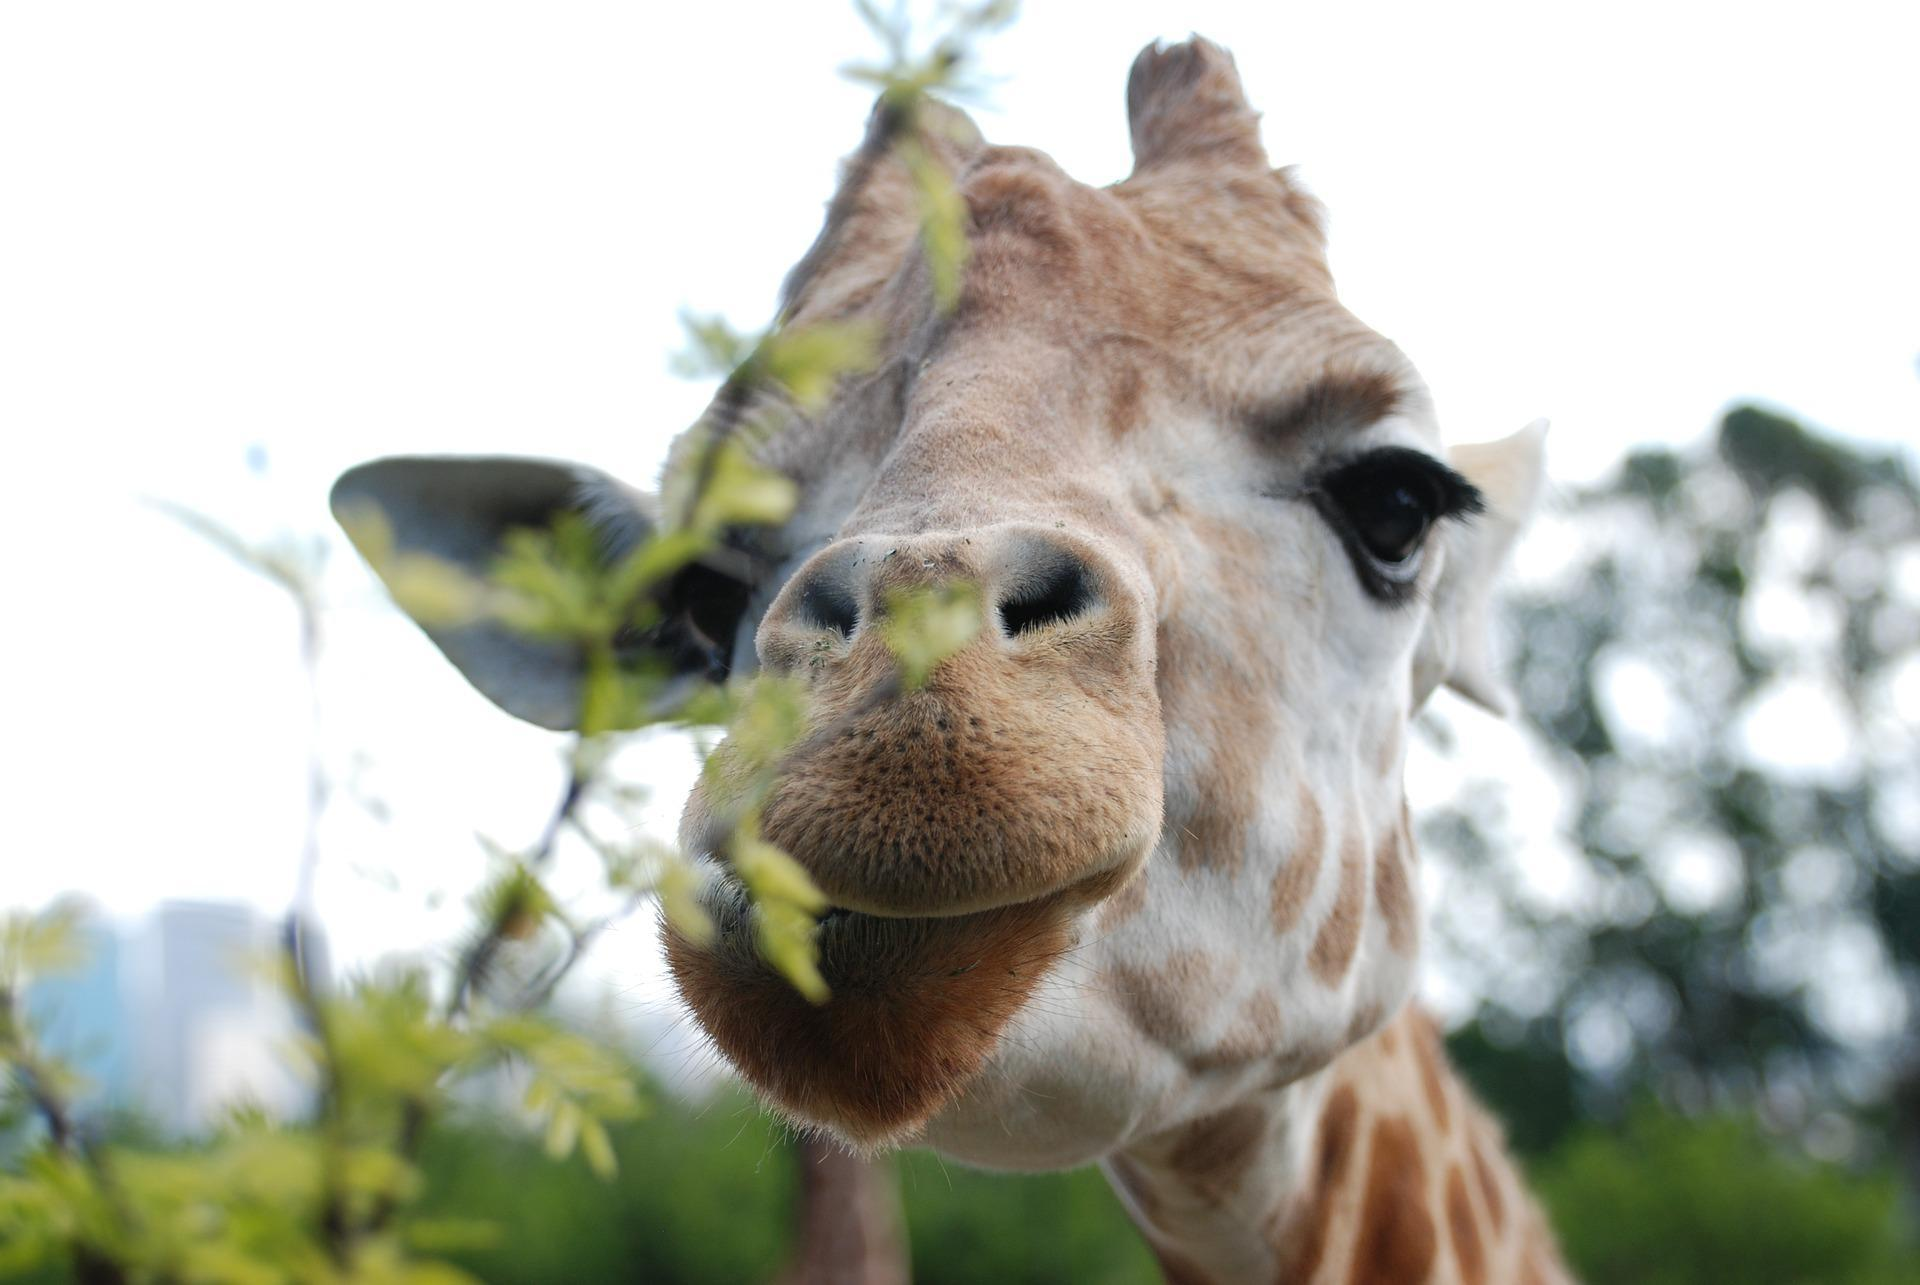 giraffe face wallpaper 68688